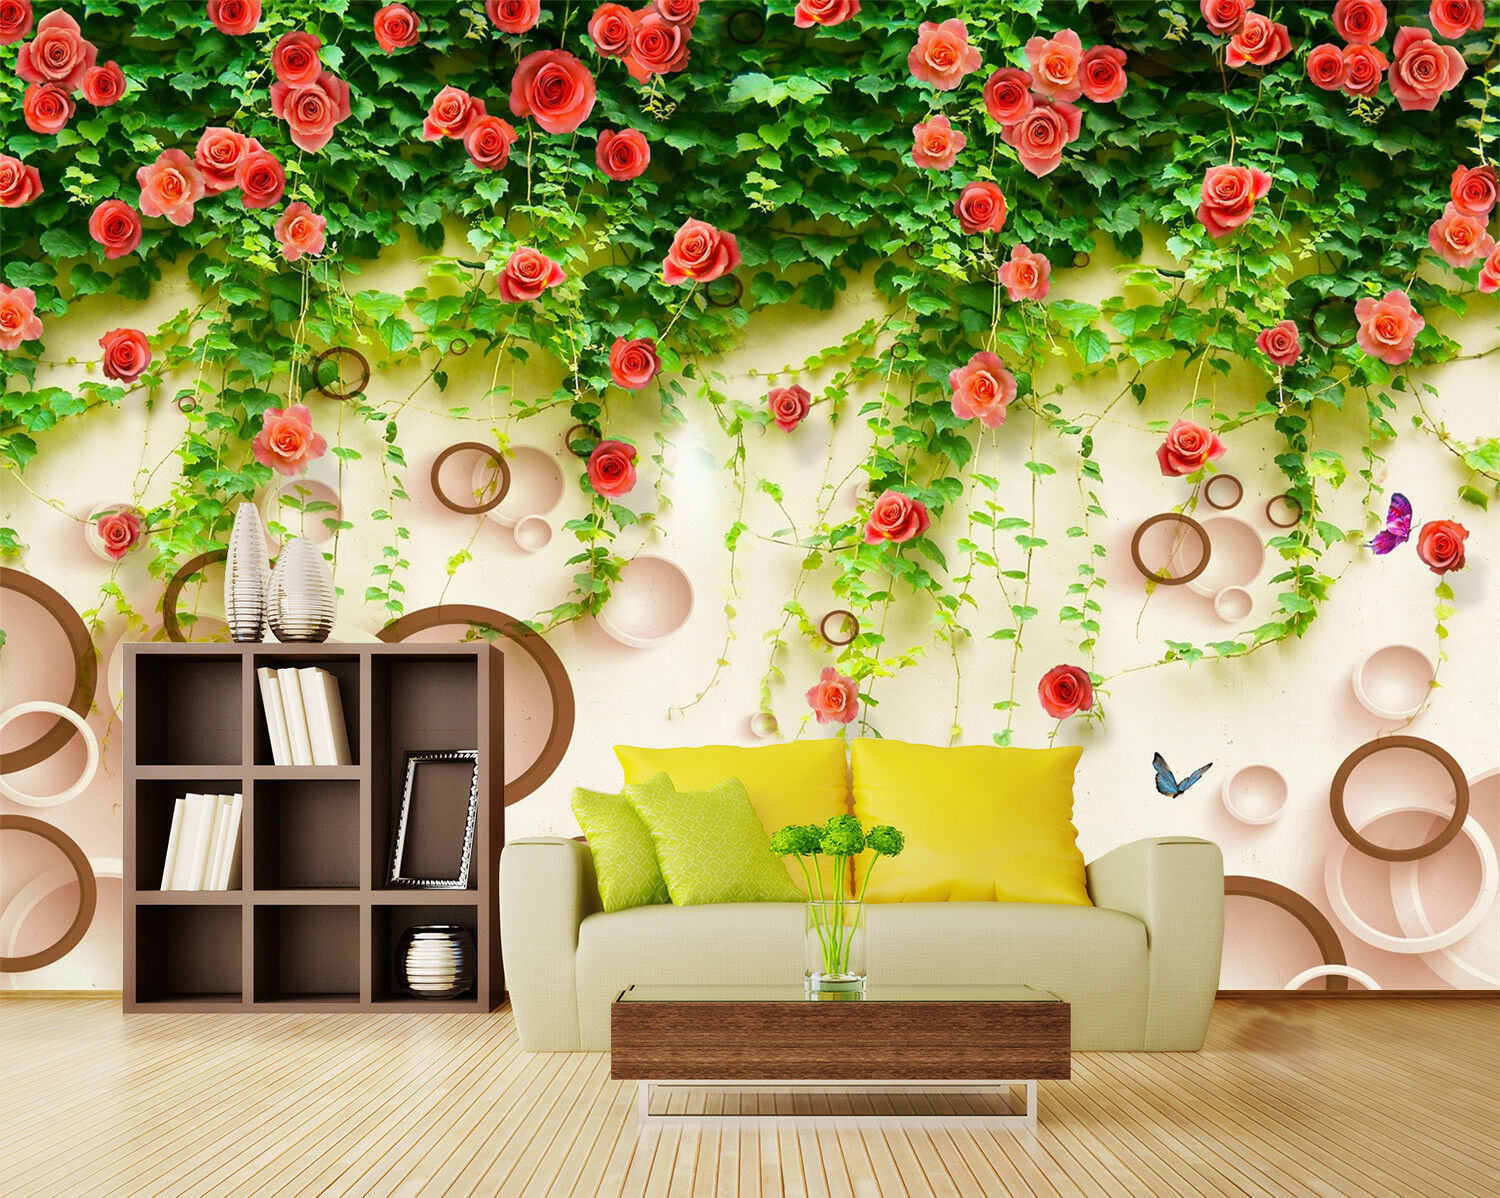 3D Flowers Leaves 57 Wallpaper Murals Wall Print Wallpaper Mural AJ WALLPAPER UK